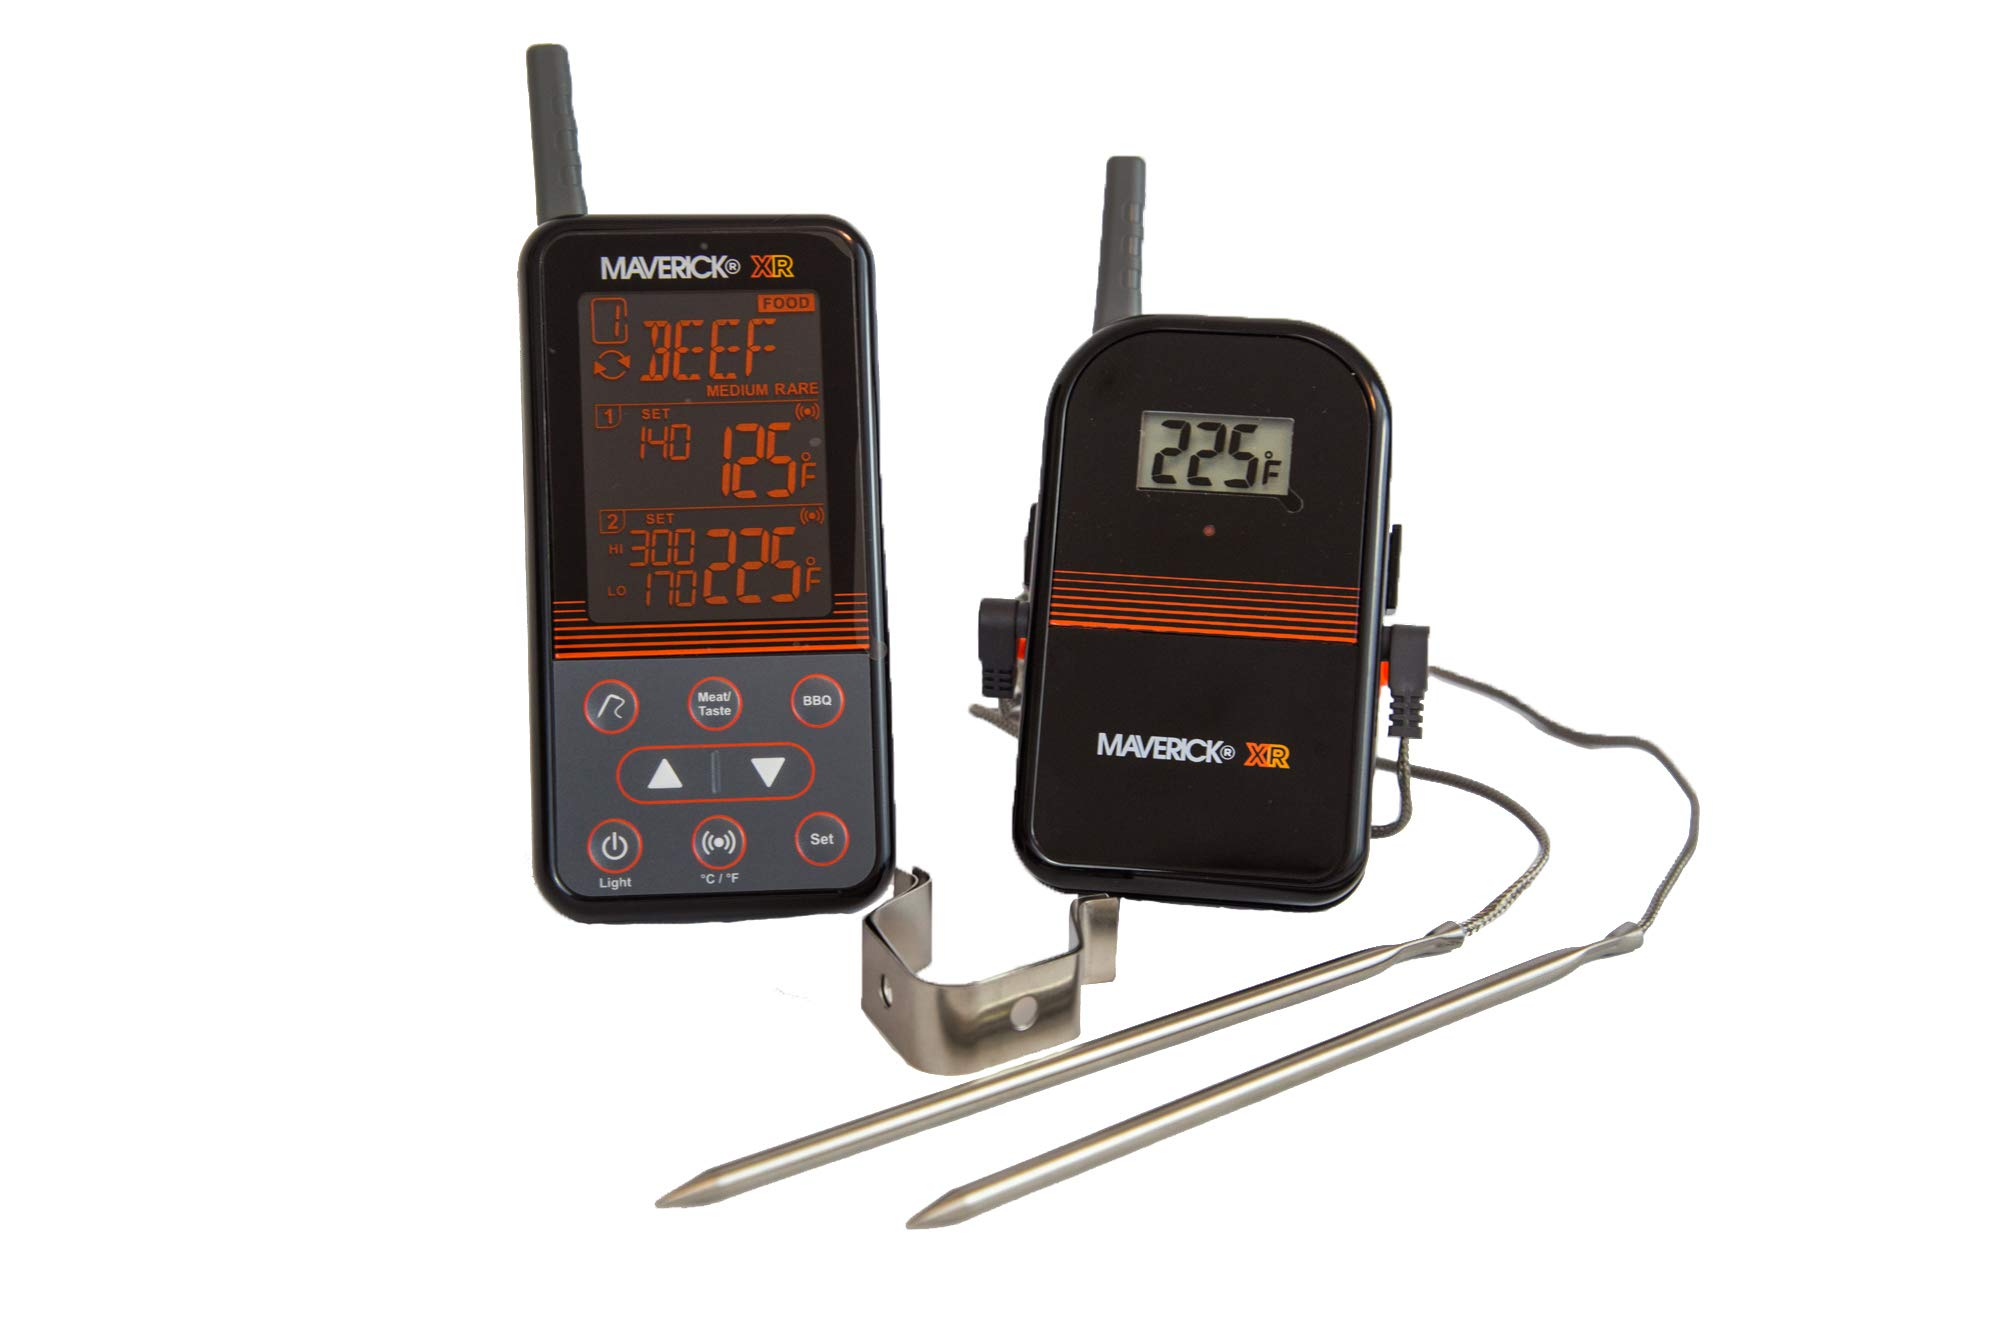 Maverick XR40 Wireless Remote Digital Cooking Food Meat Thermometer with Dual Probe for Smoker Grill BBQ Thermometer, Extended Range 500 FT Range